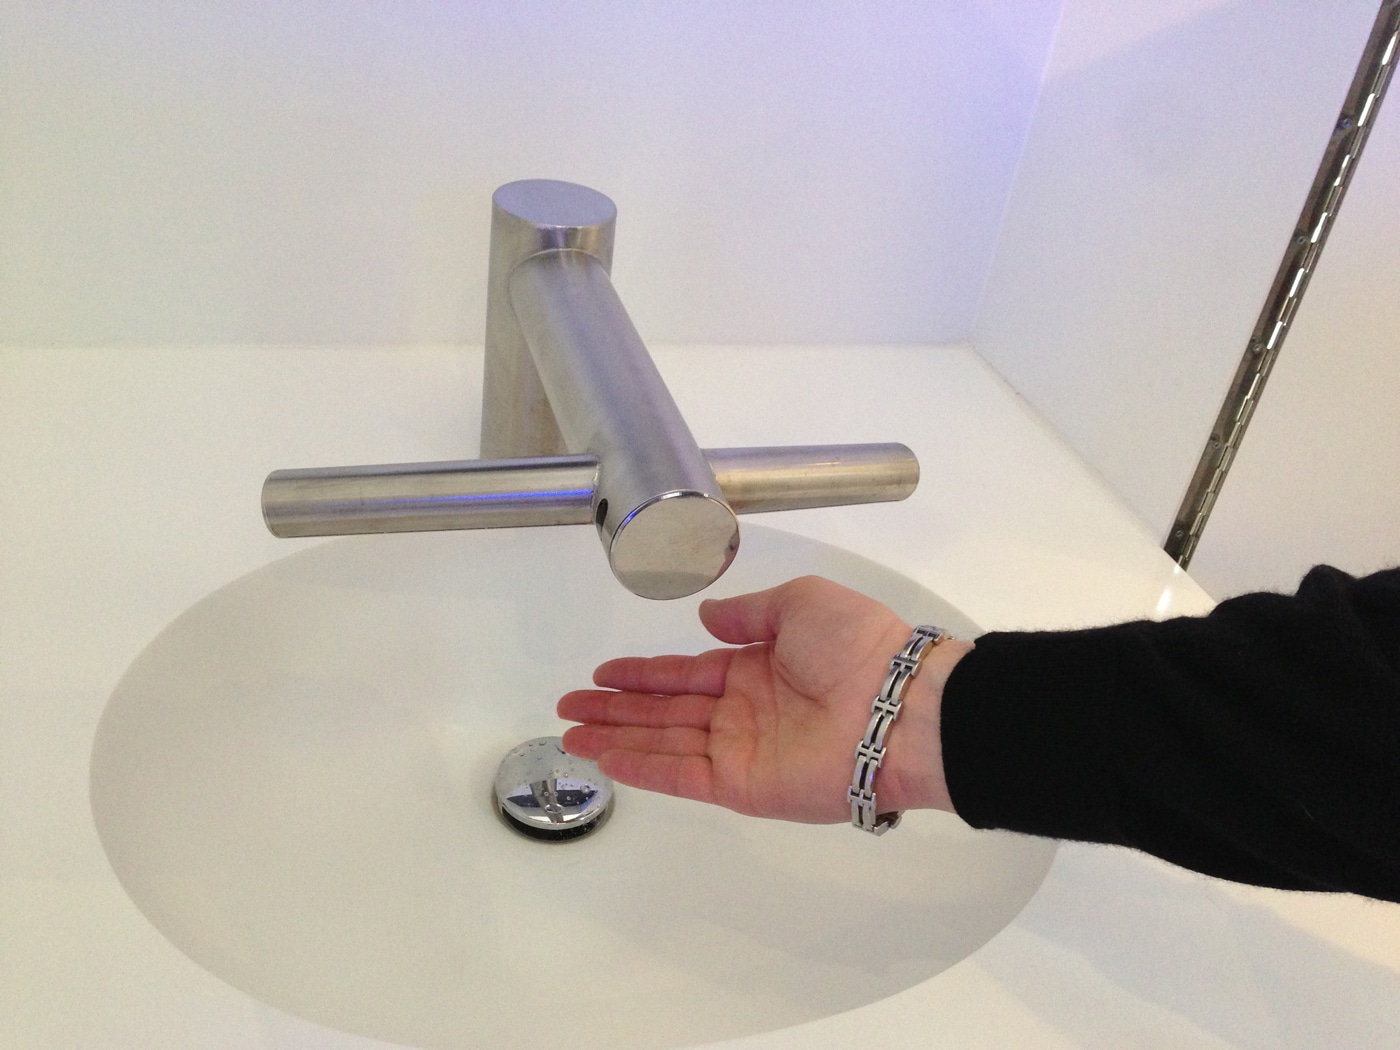 Dyson Airblade Tap Optimizes Our Entire Hand Washing & Drying Process